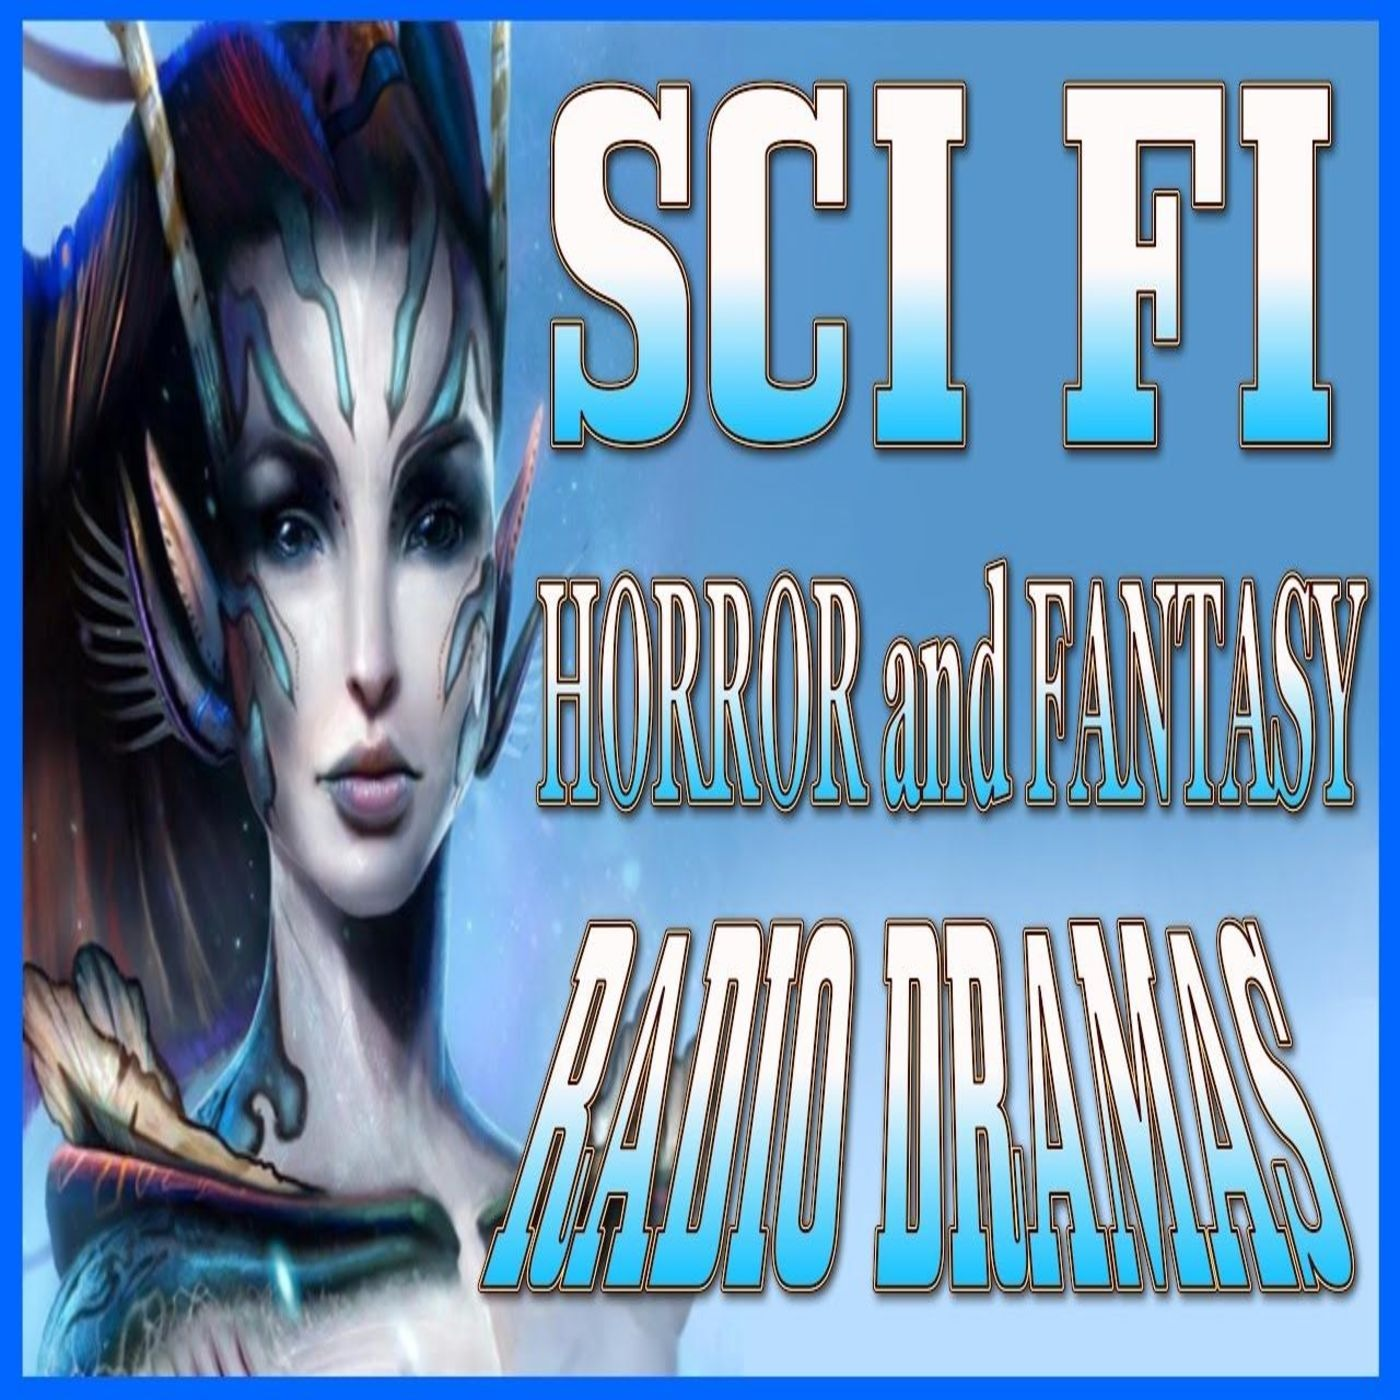 Old Time Radio Sci-Fi, Horror Etc...